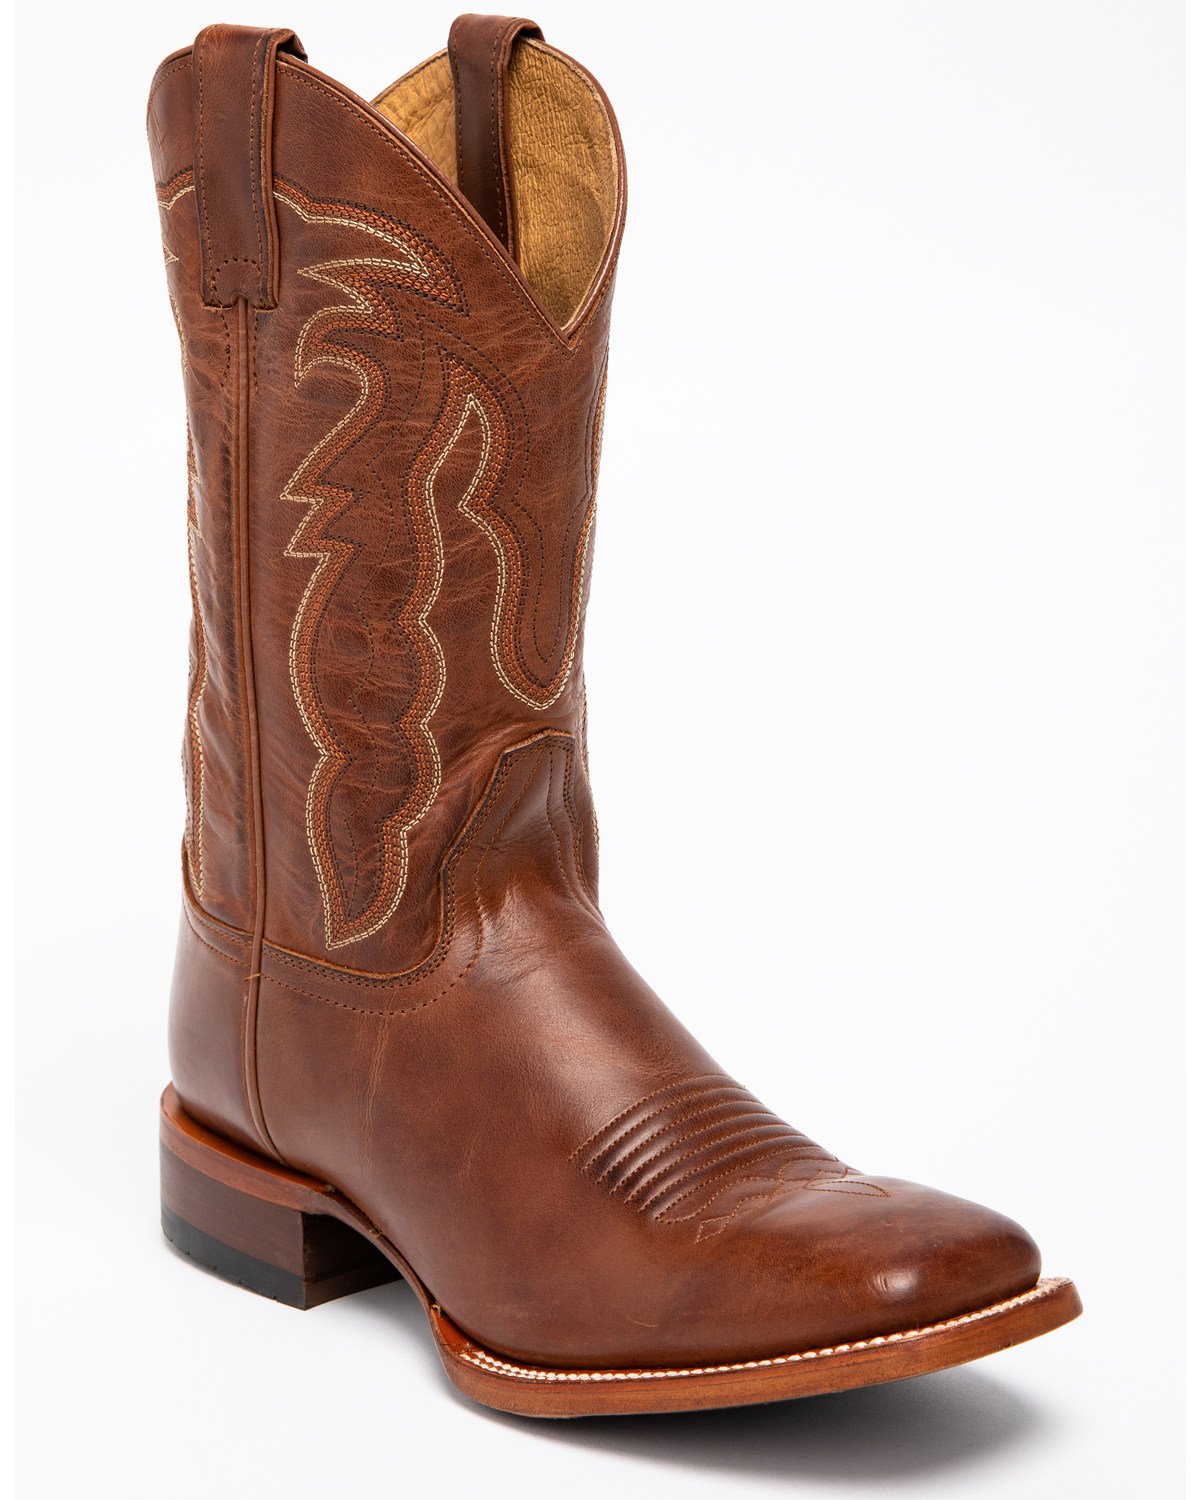 234e193b639 Cody James Men's Diesel Western Boots - Wide Square Toe